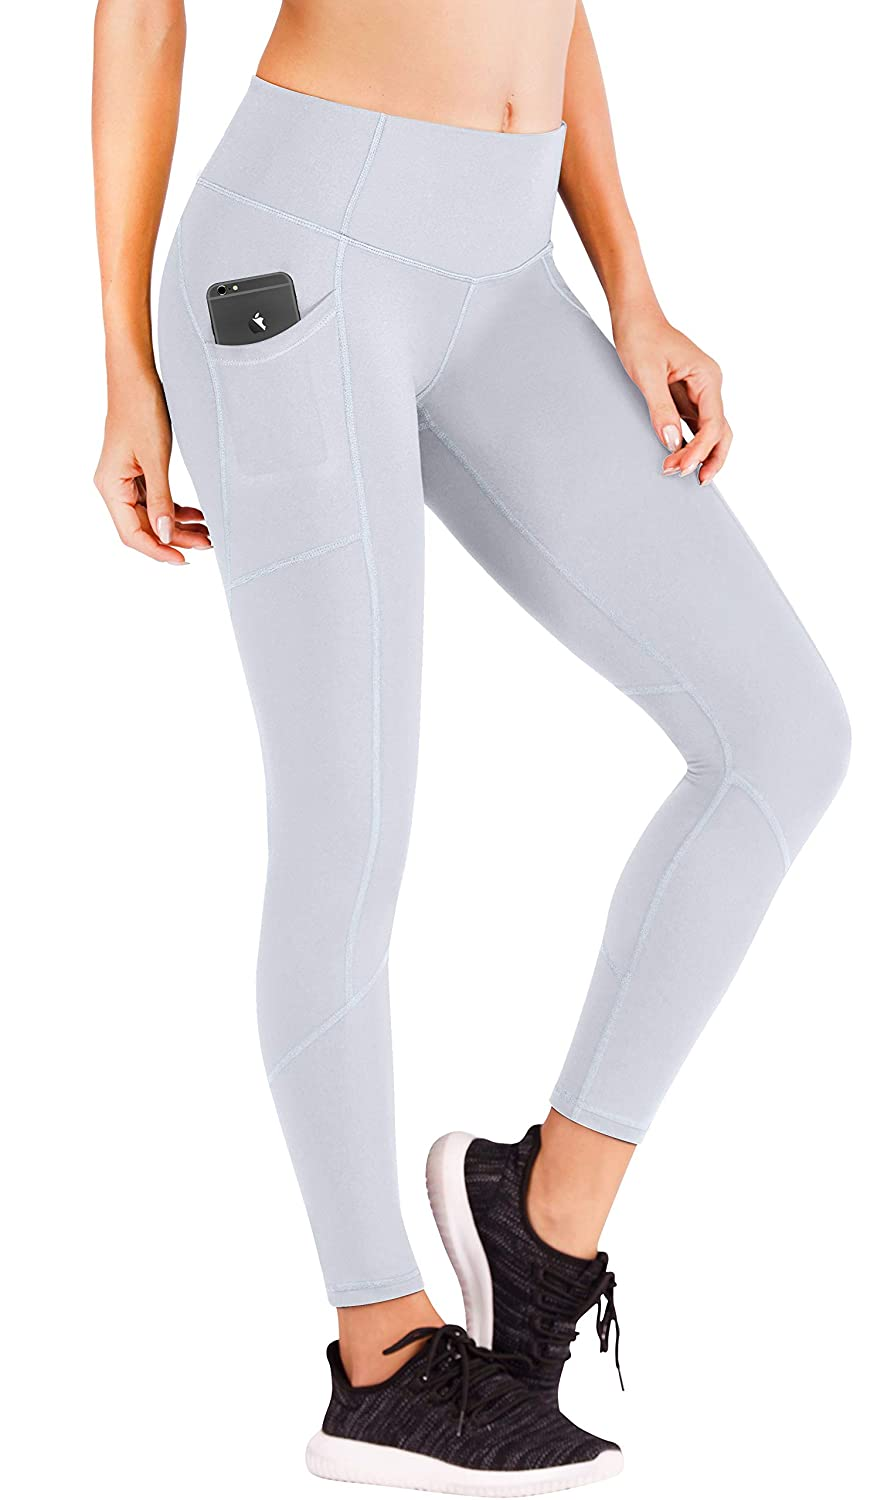 Ewedoos Yoga Pants Women Leggings with Pockets High Waist Tummy Control Workout Pants for Women 7340 (Light Grey, Small)